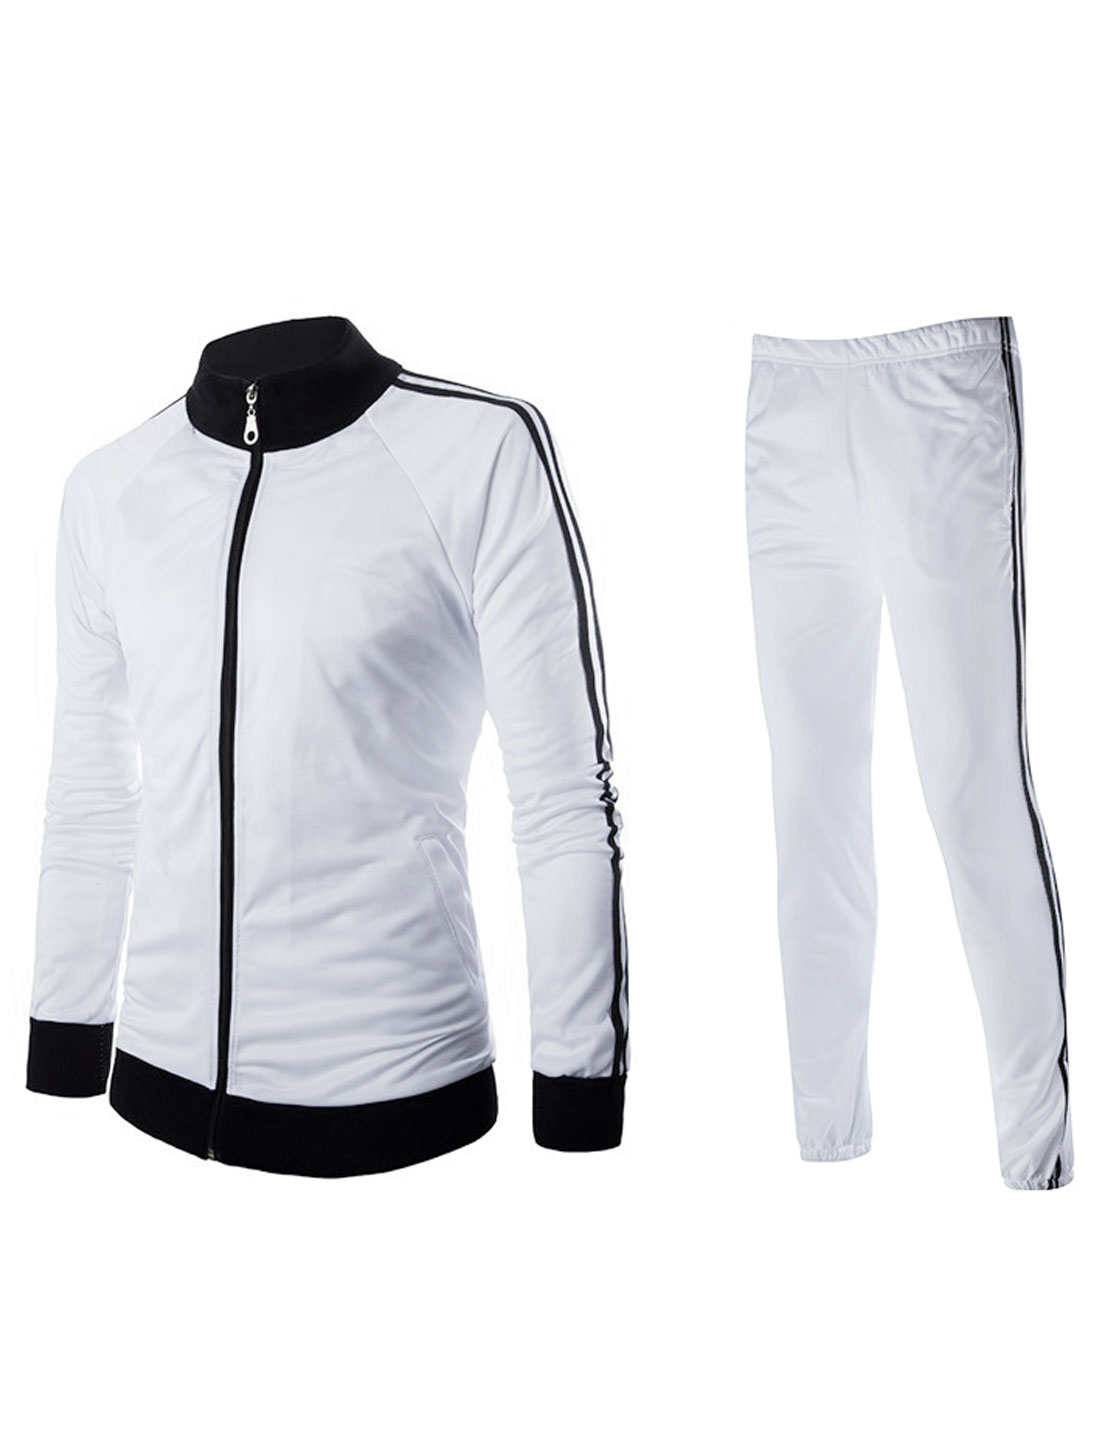 Men Long Sleeves Two Pocket Jacket w Elastic Cuffs Pants Sets White S